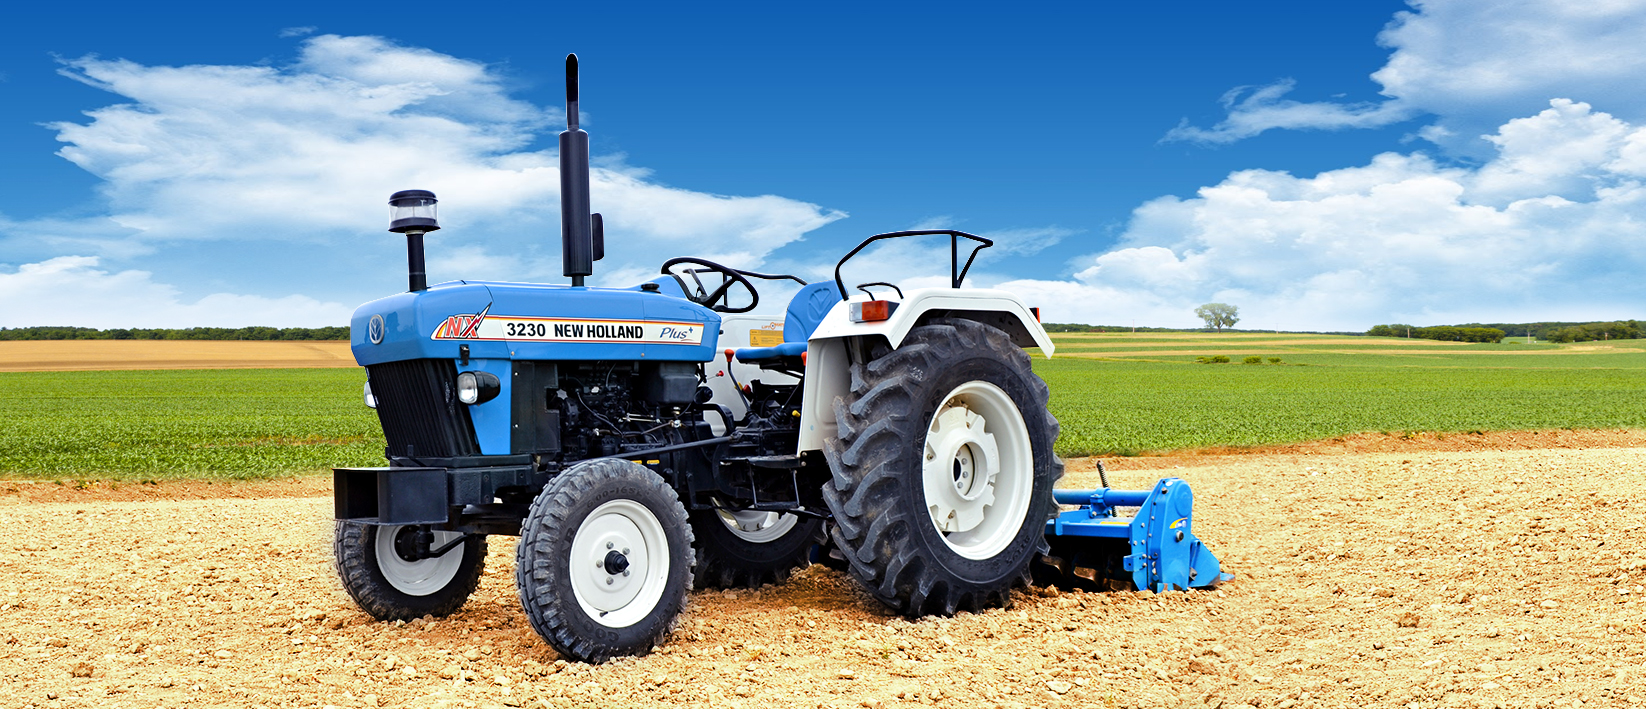 New holland d